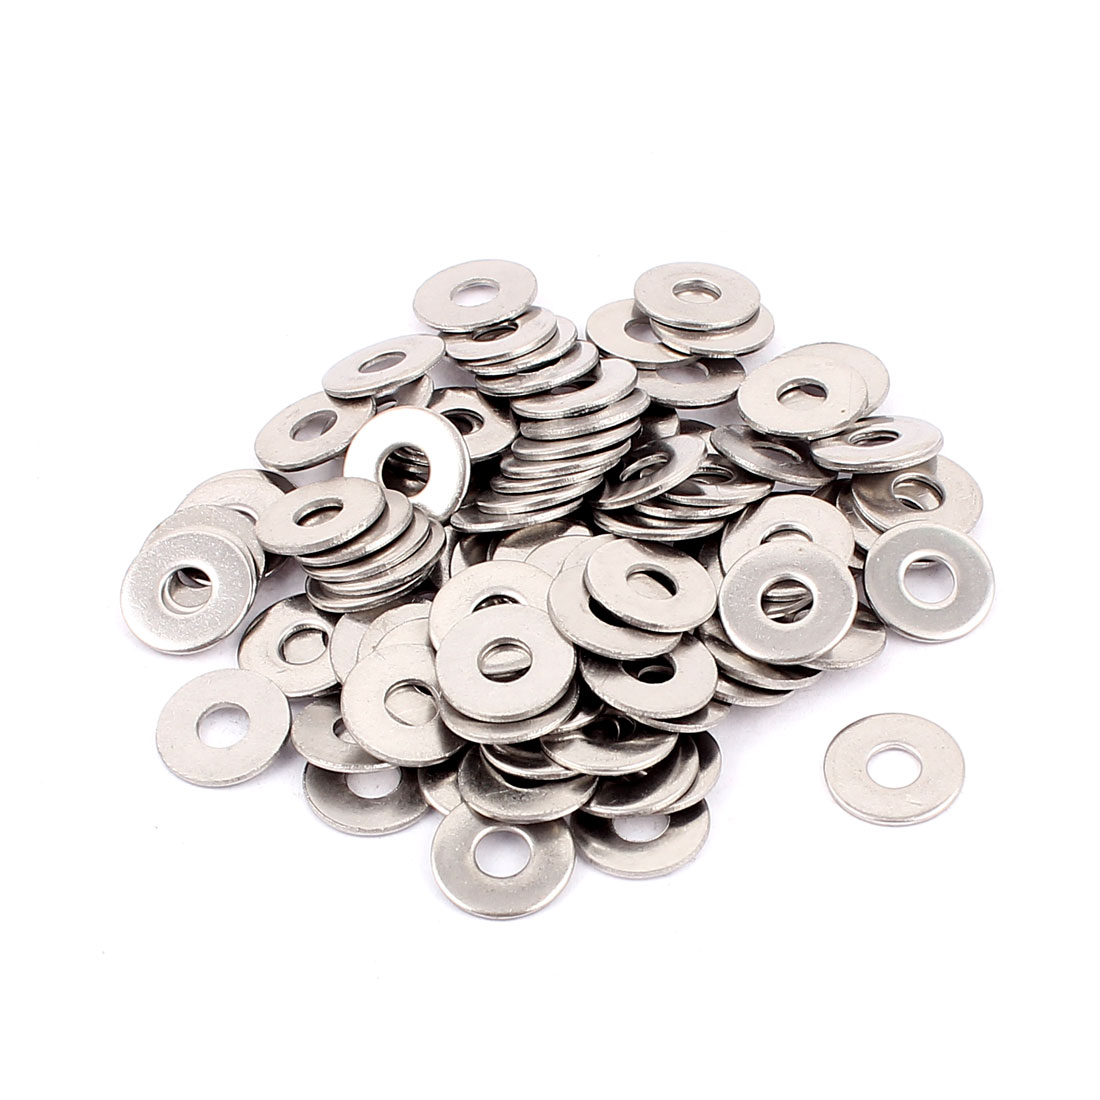 Screws Repair Part 4mm 304 Stainless Steel Flat Washer Spacer 100pcs